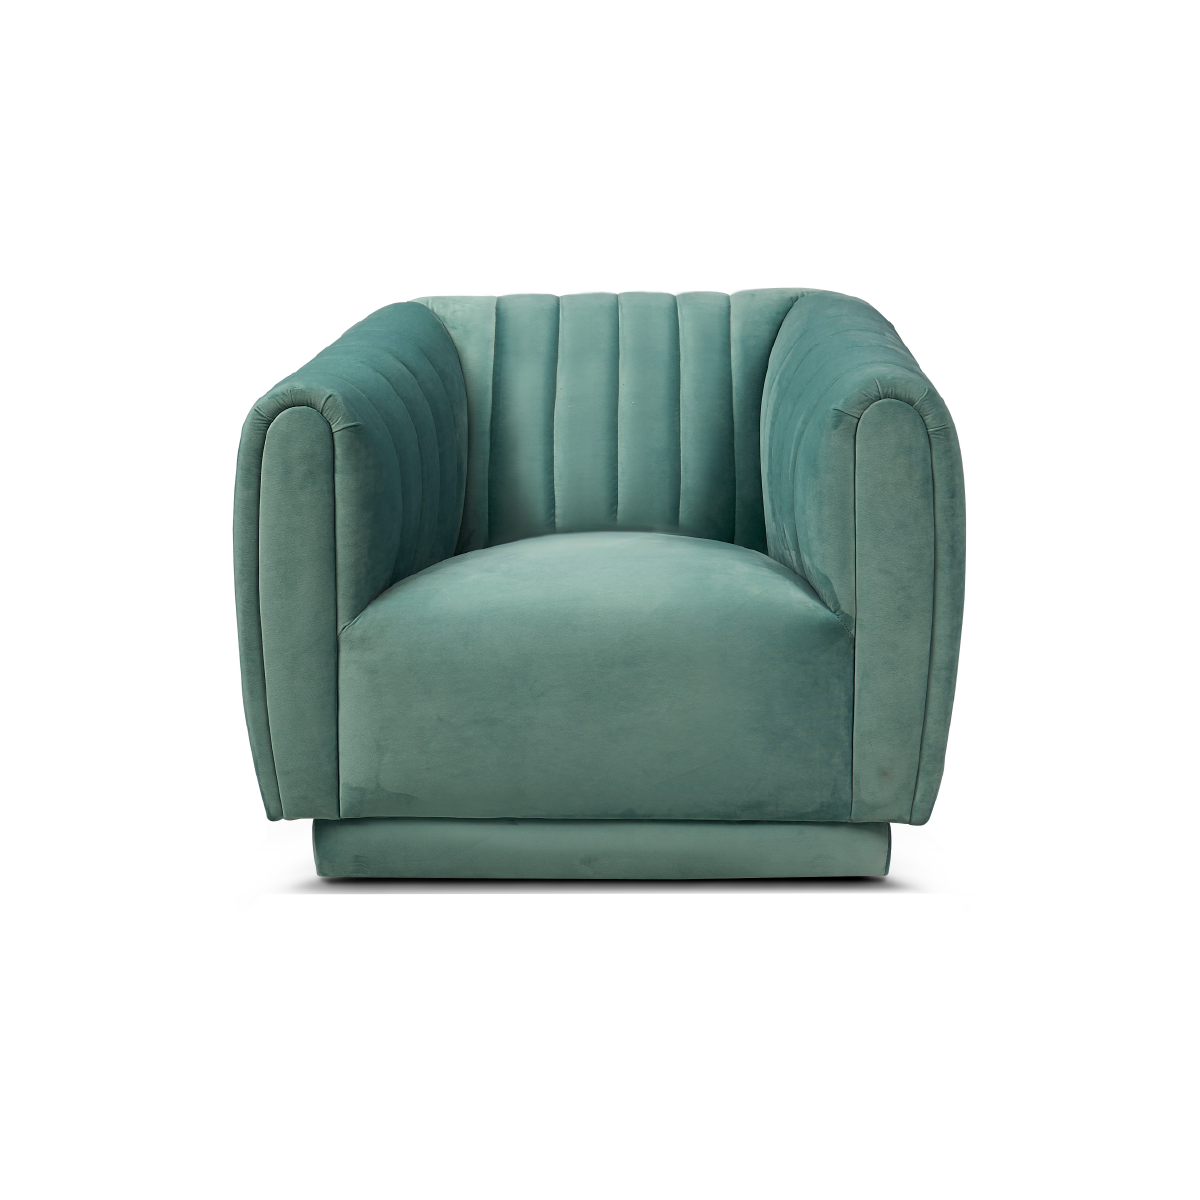 Peridot Armchair Sofa - mhomefurniture